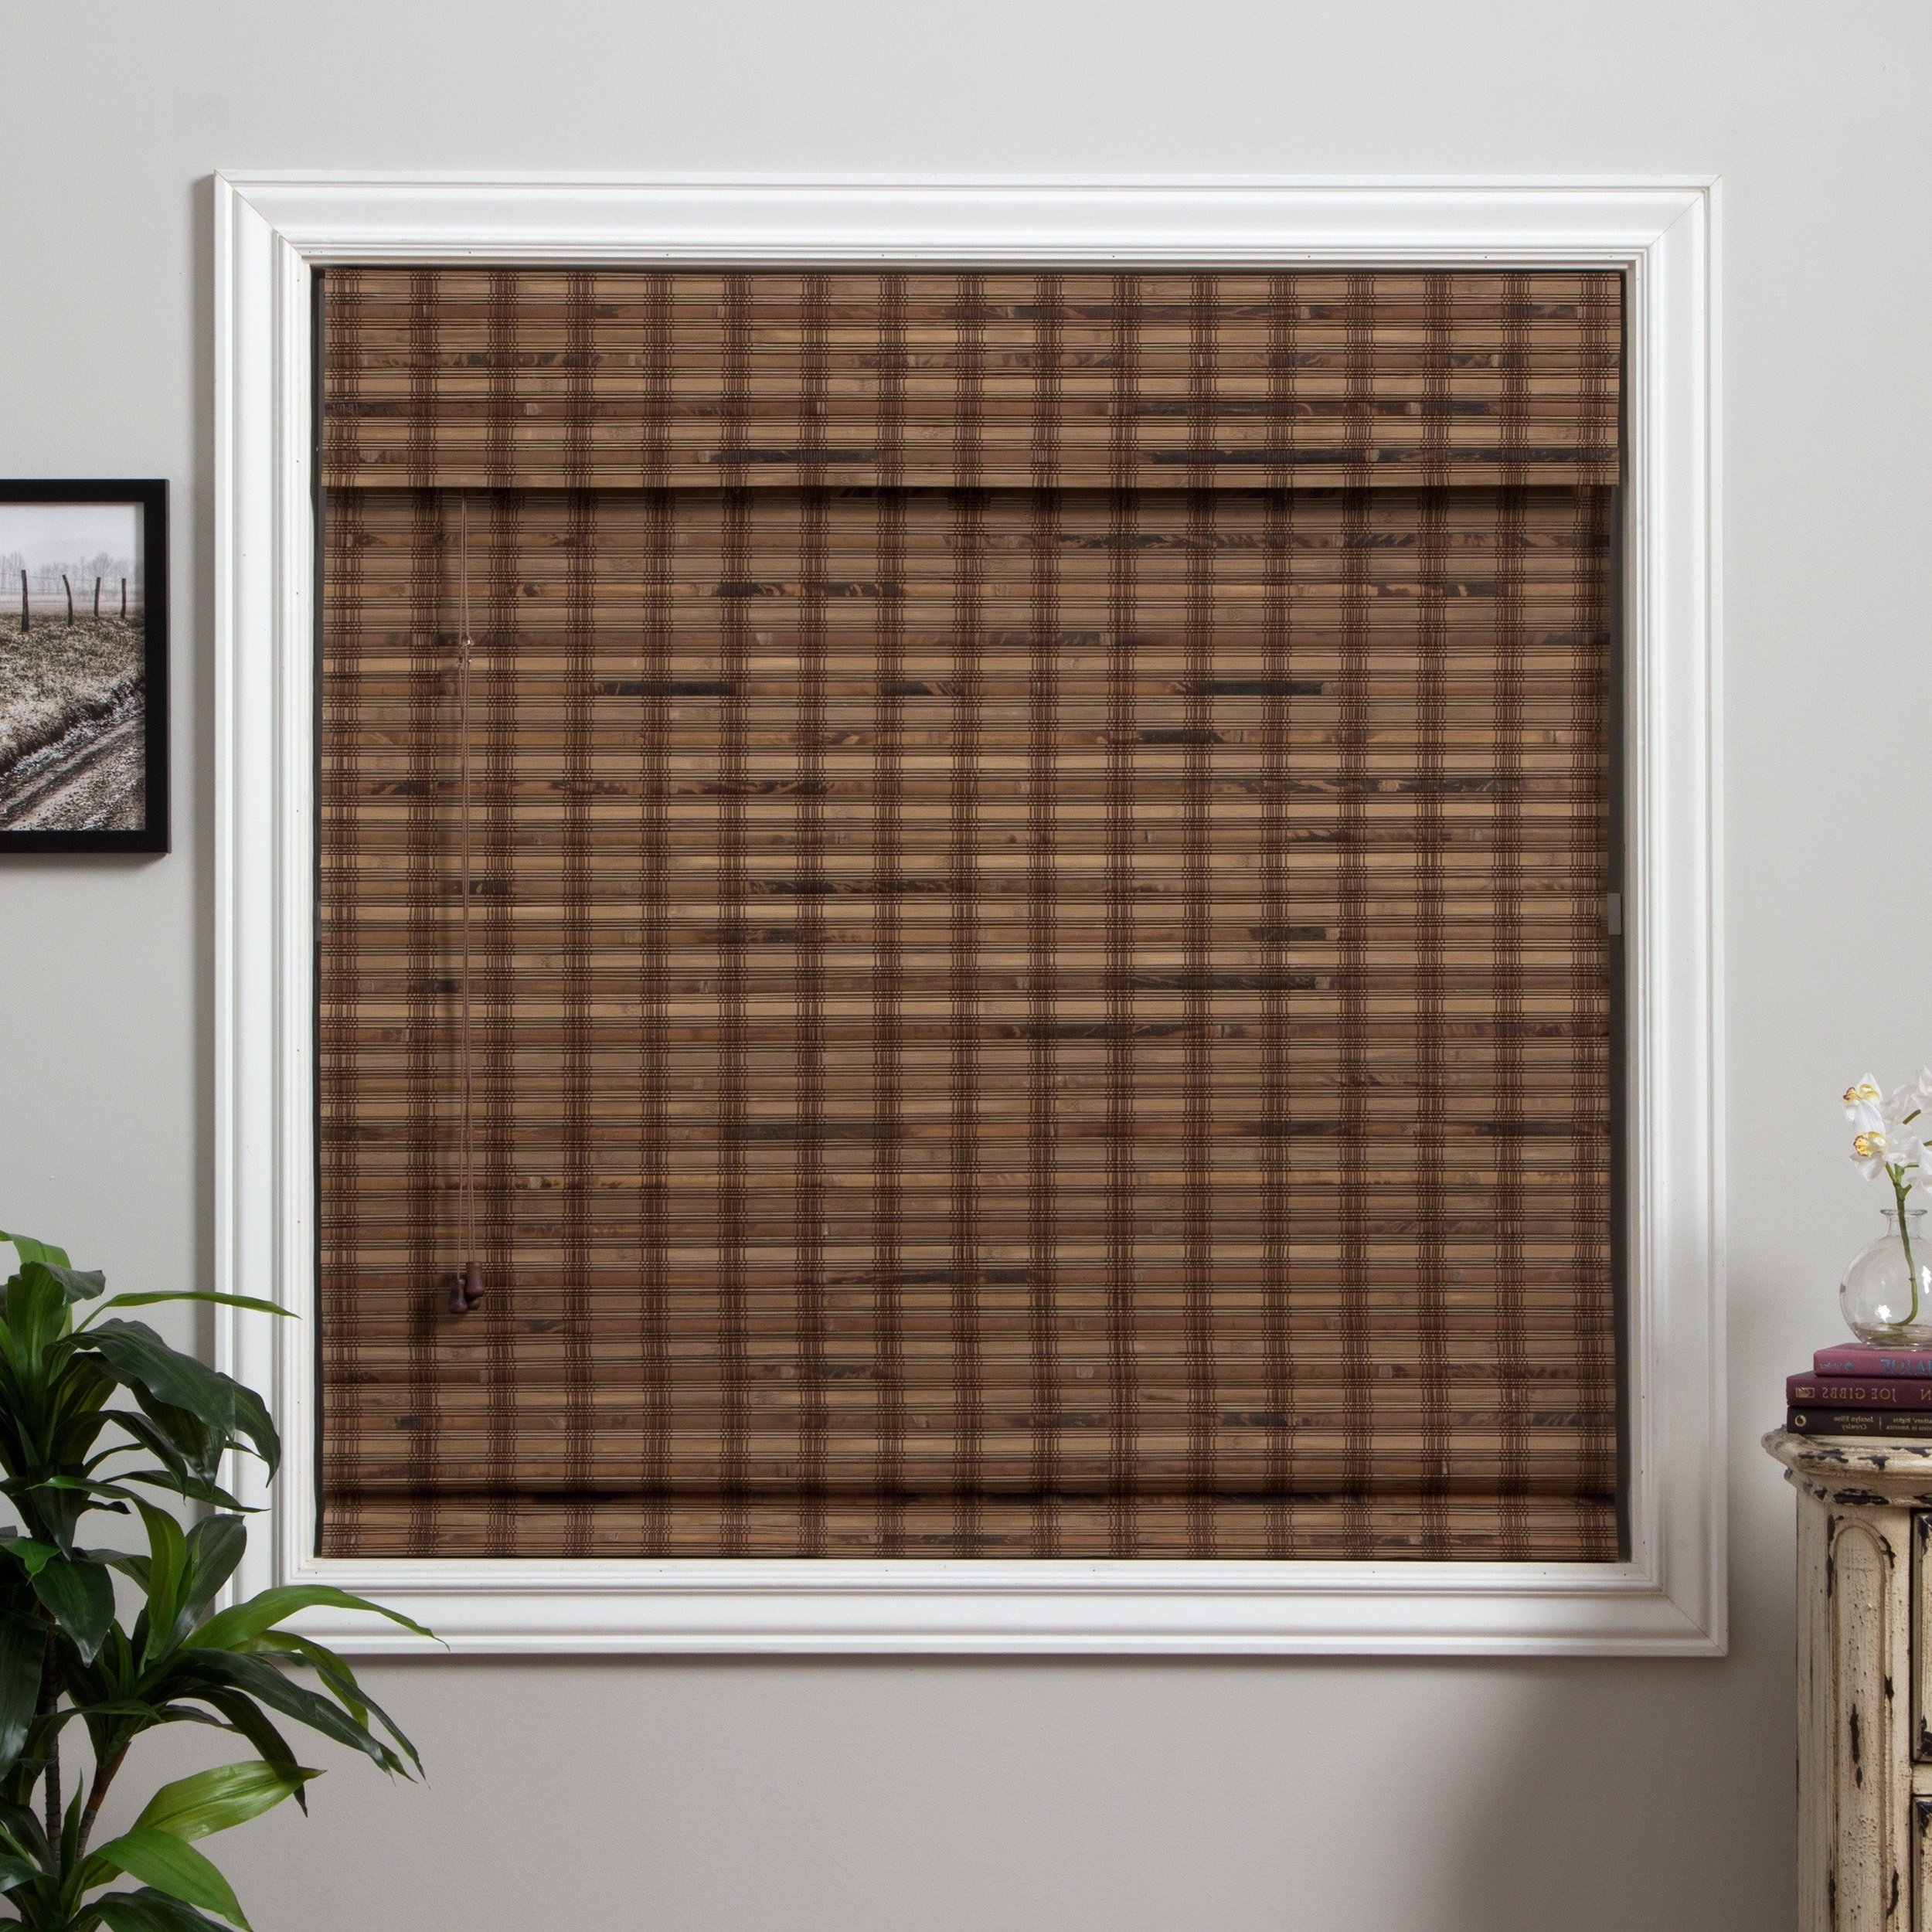 1 Piece 73''Wx74''L Multi Black Grain Brown Ochre Tan Natural Wood Pull Up Bamboo Blind Eco Friendly Rustic Roman Horizontal Slat With Built In Valance Nature Window Treatment Allows Gentle Sunlight